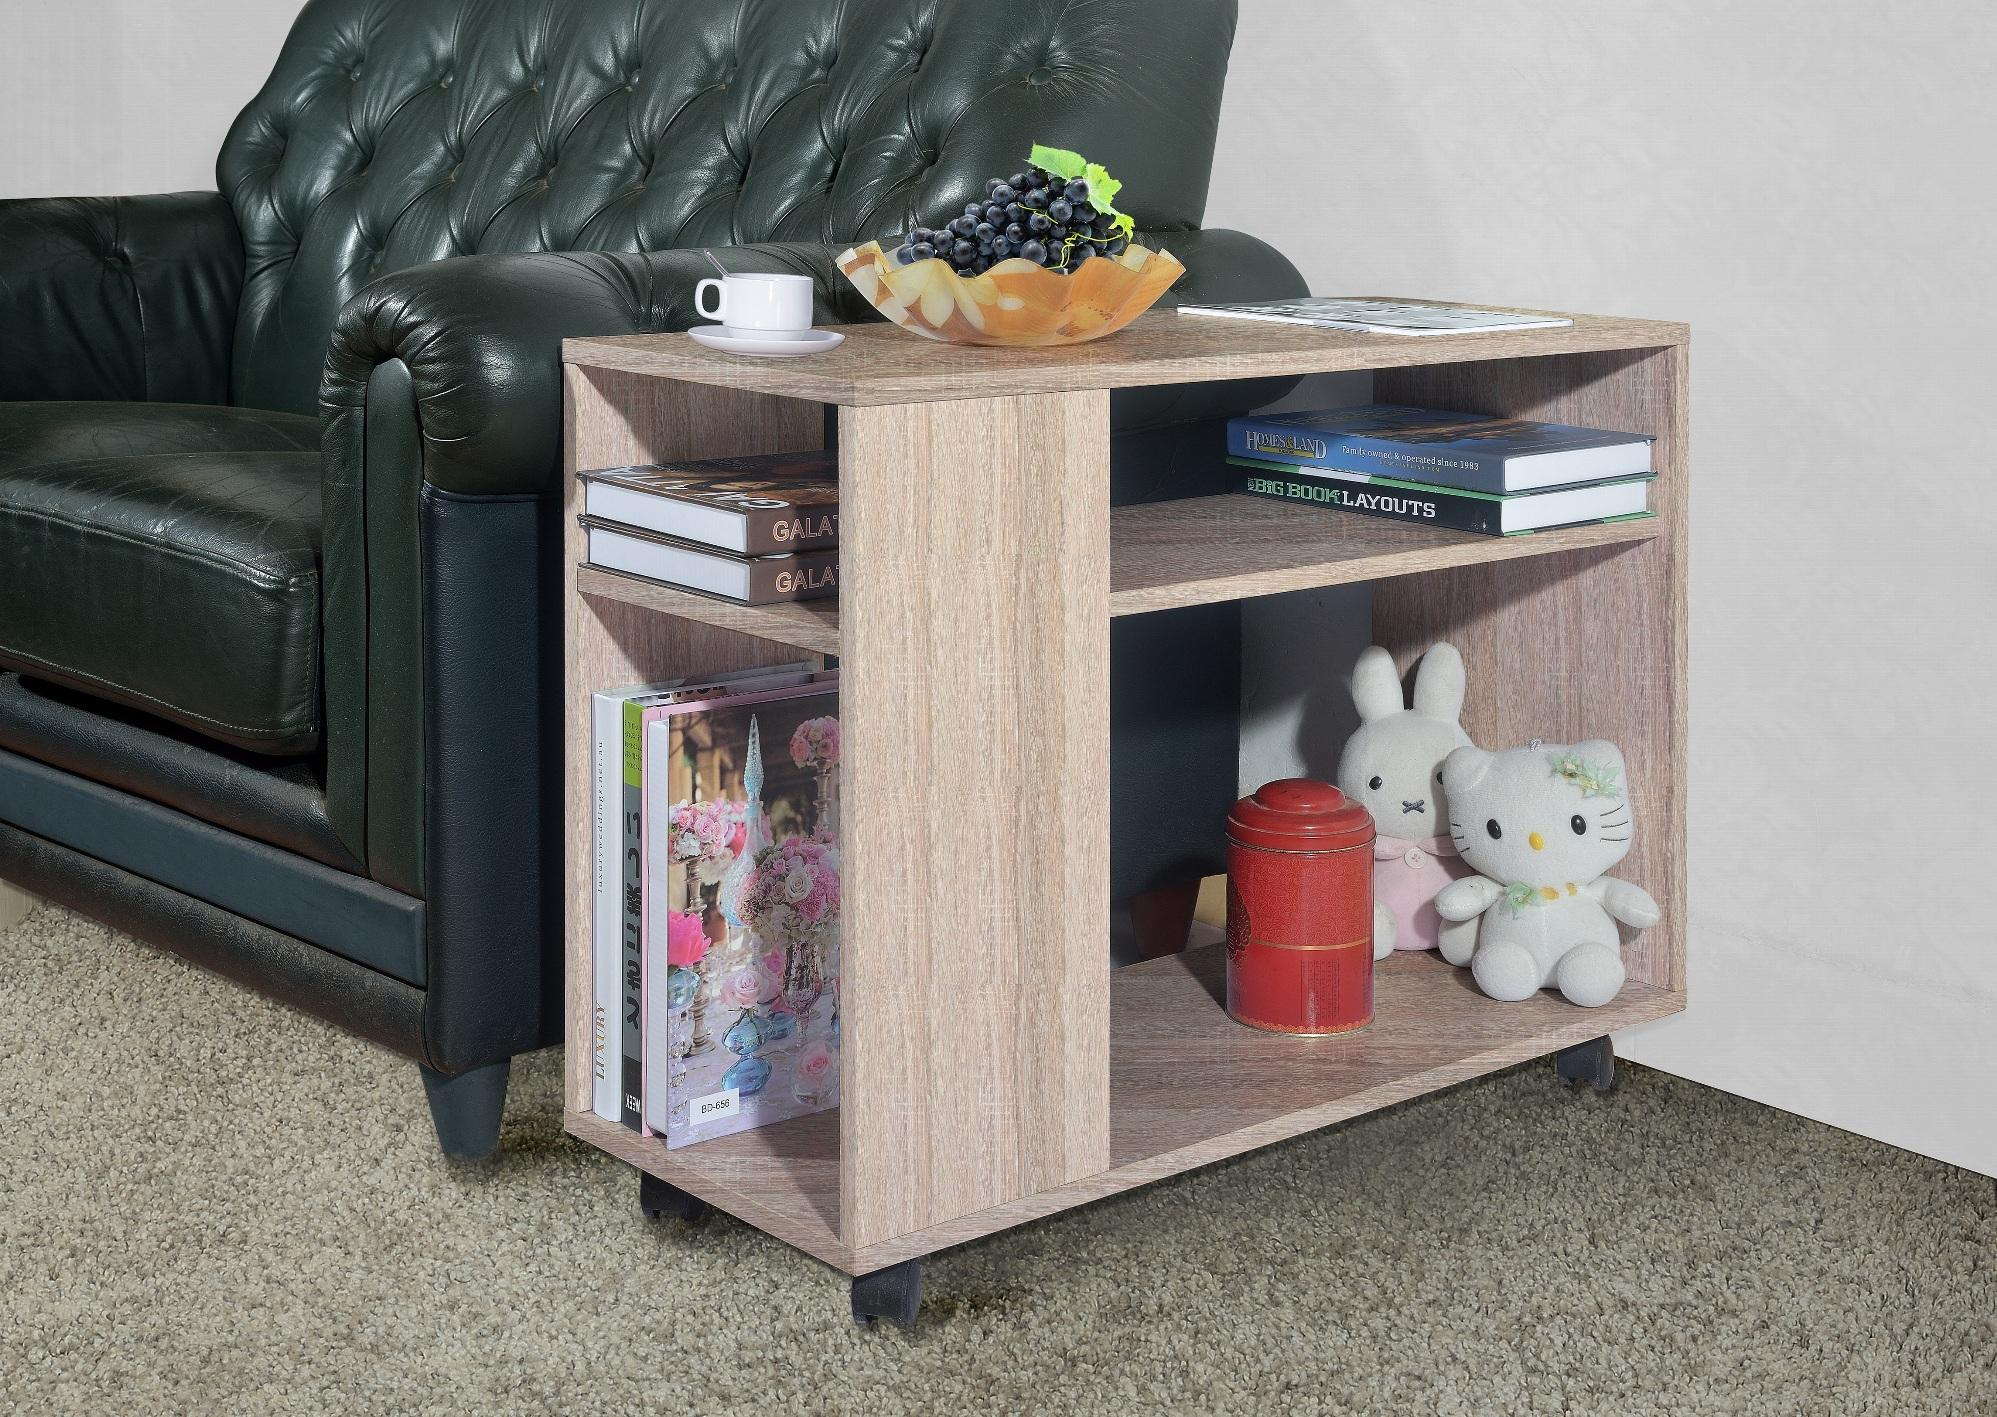 Primetime Modern Melamine Side Table With Bottom Storage Shelf And Casters By Direct2u.